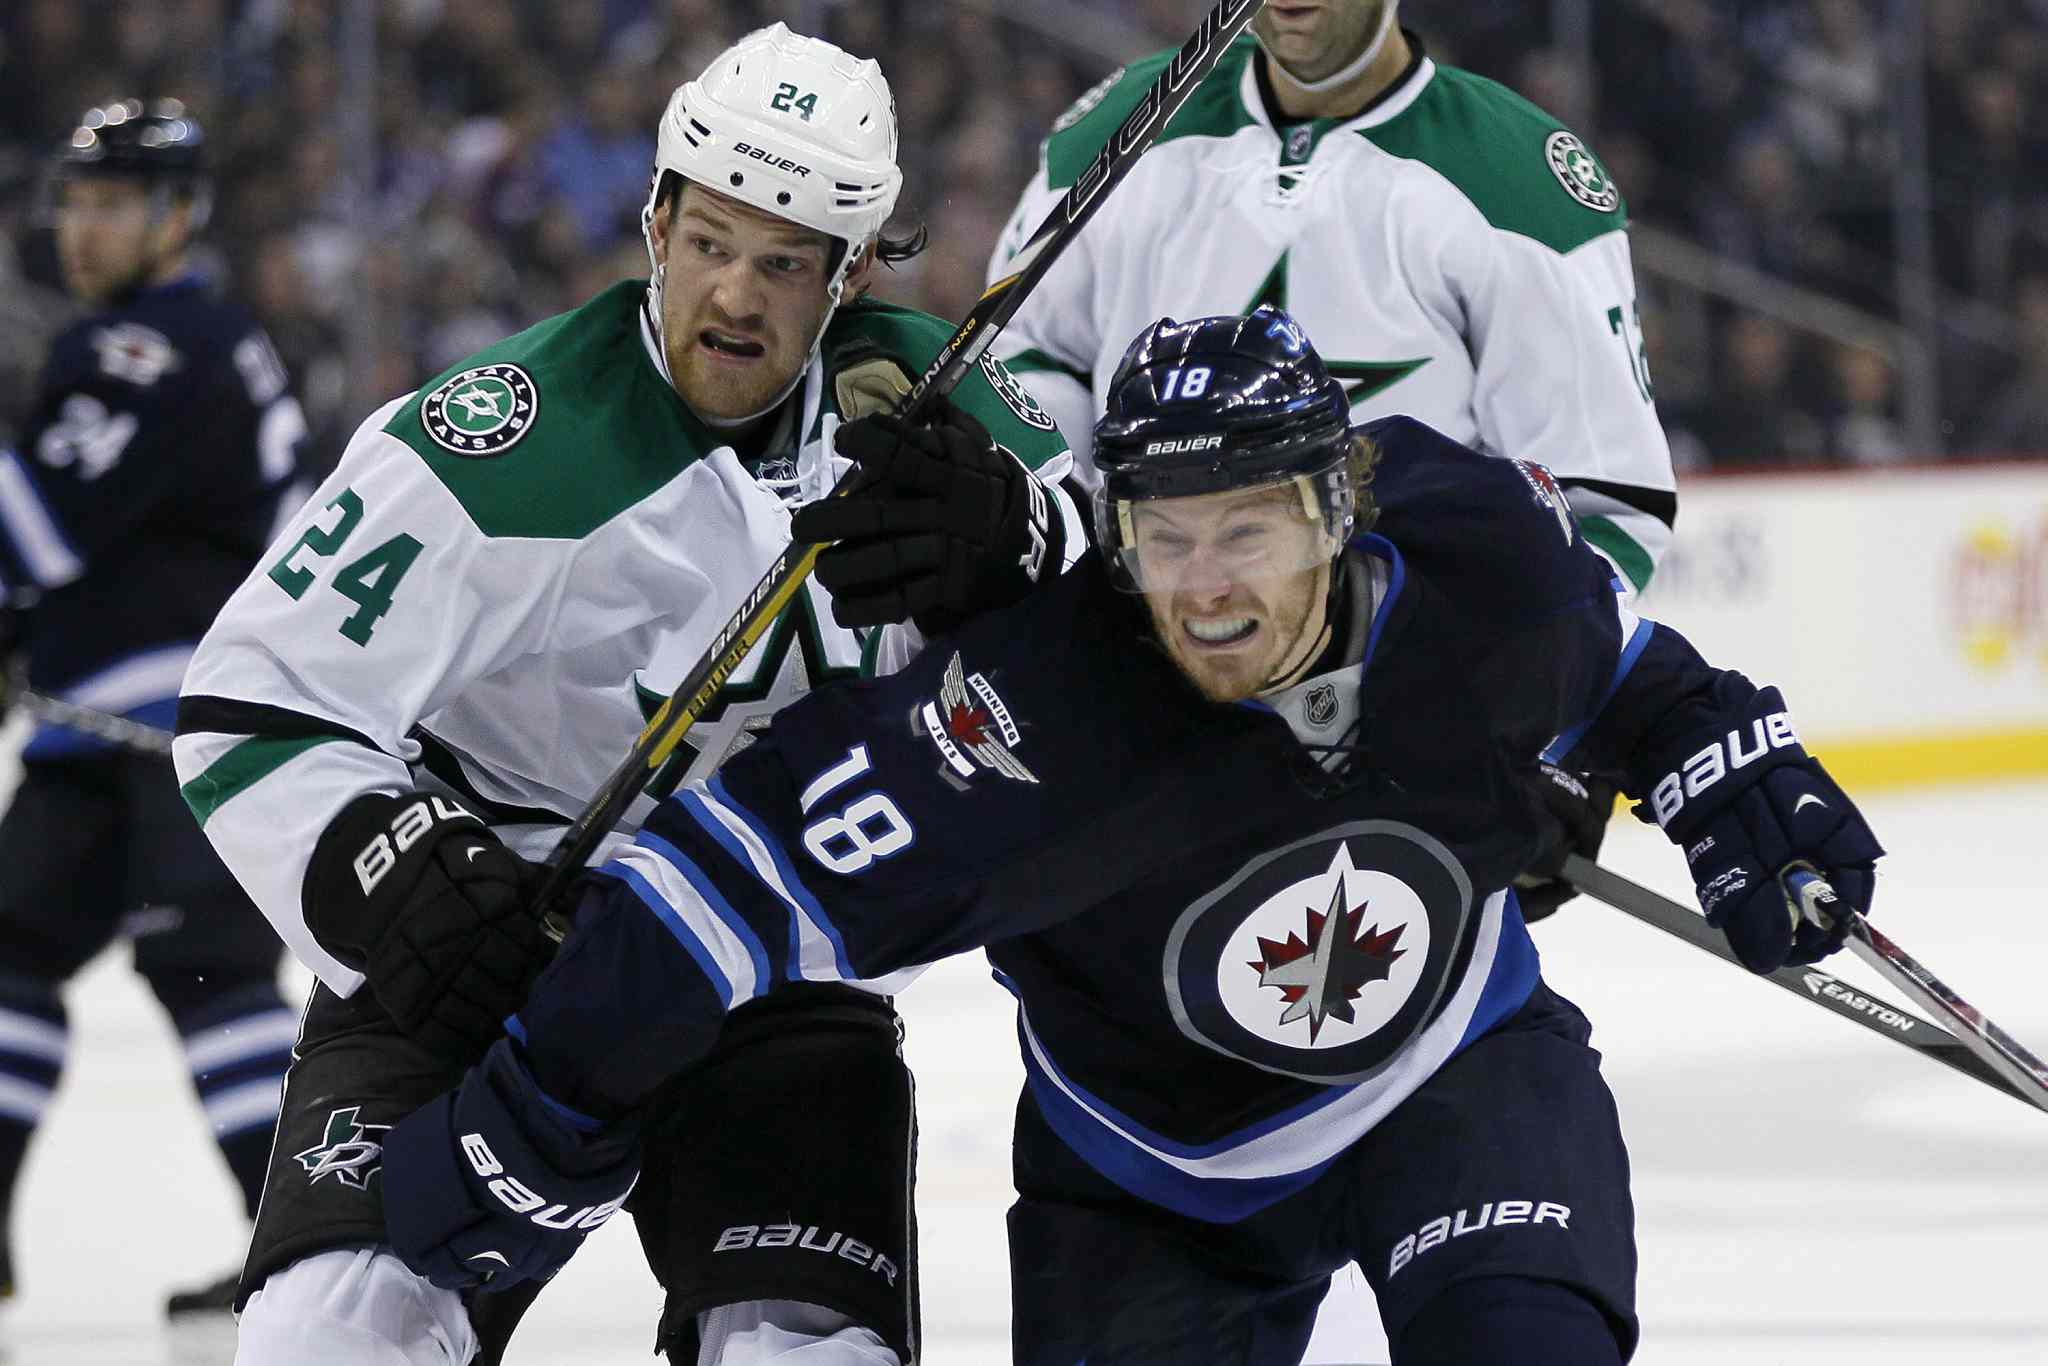 Winnipeg Jets' Bryan Little (18) attempts to get around Dallas Stars' Jordie Benn (24) during the second period.